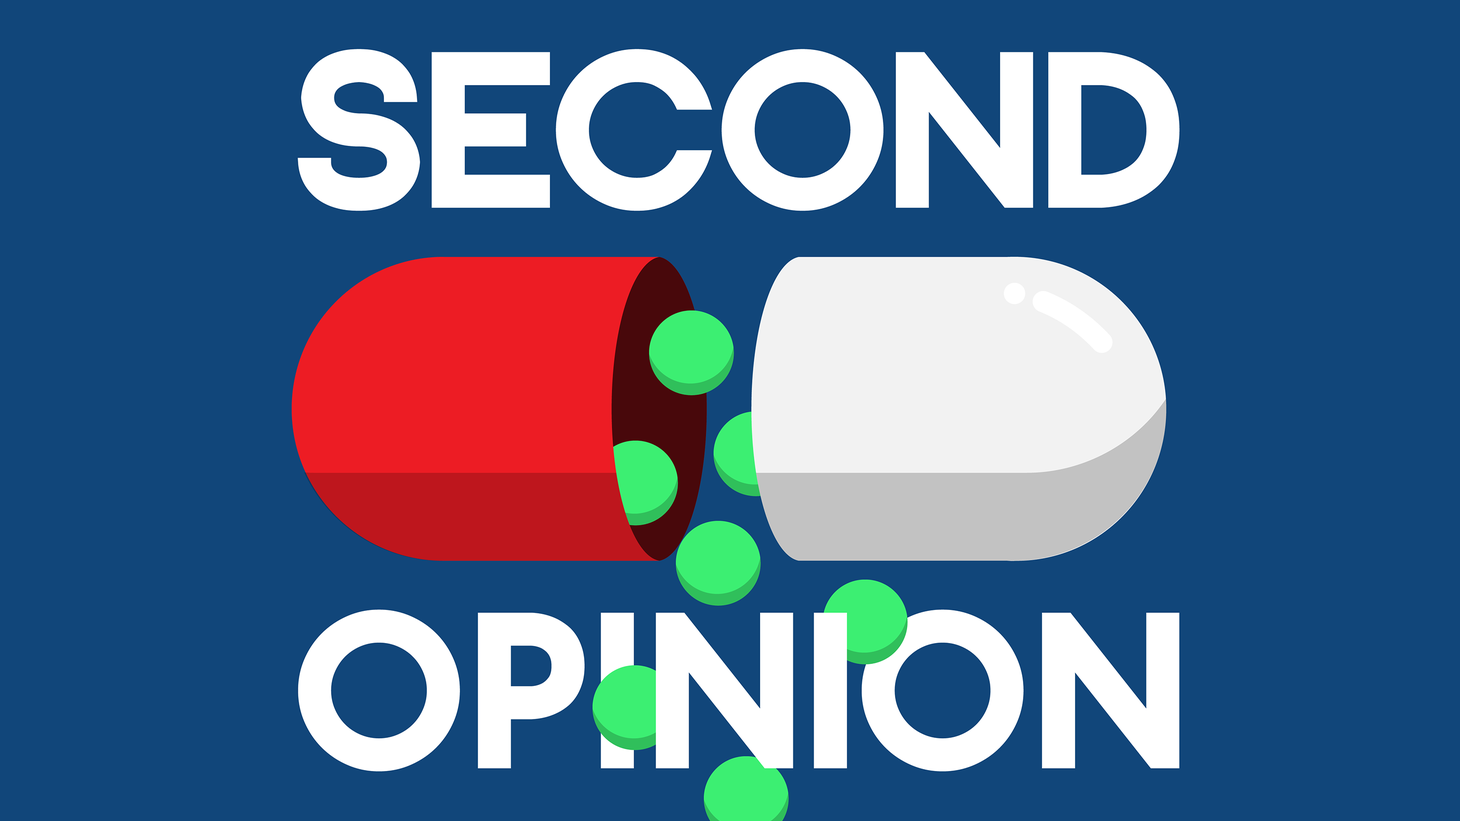 """We need to rethink what """"exposure"""" to drugs means and whether health care professionals should be held to a different standard than other citizens."""